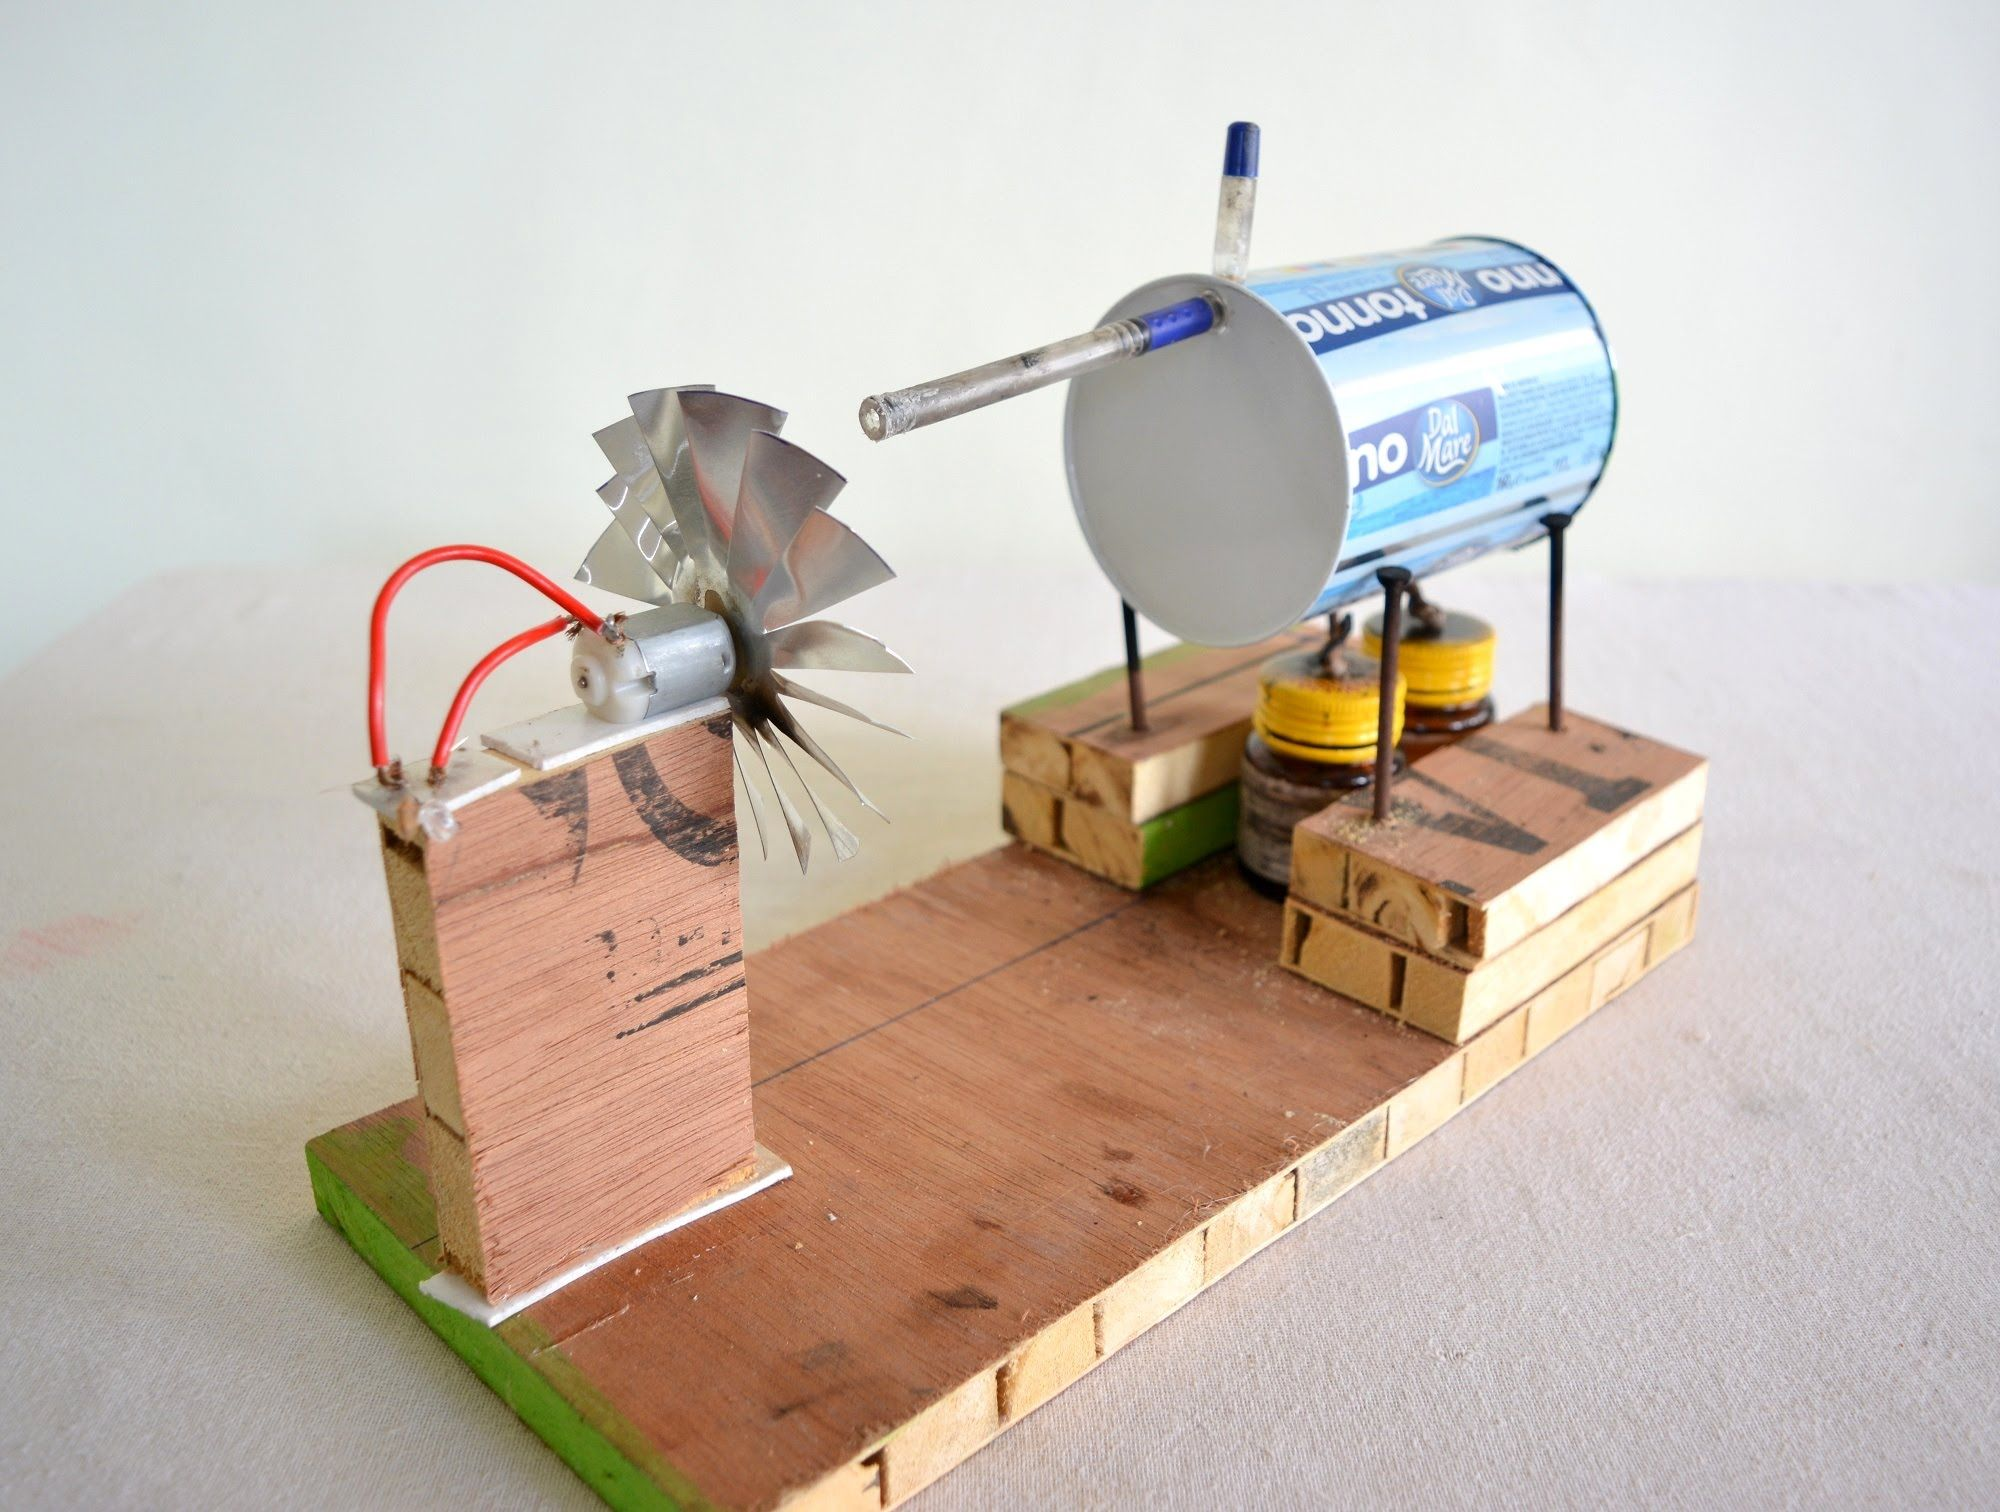 How to make steam power generator a cool science project for Simple electric motor science project